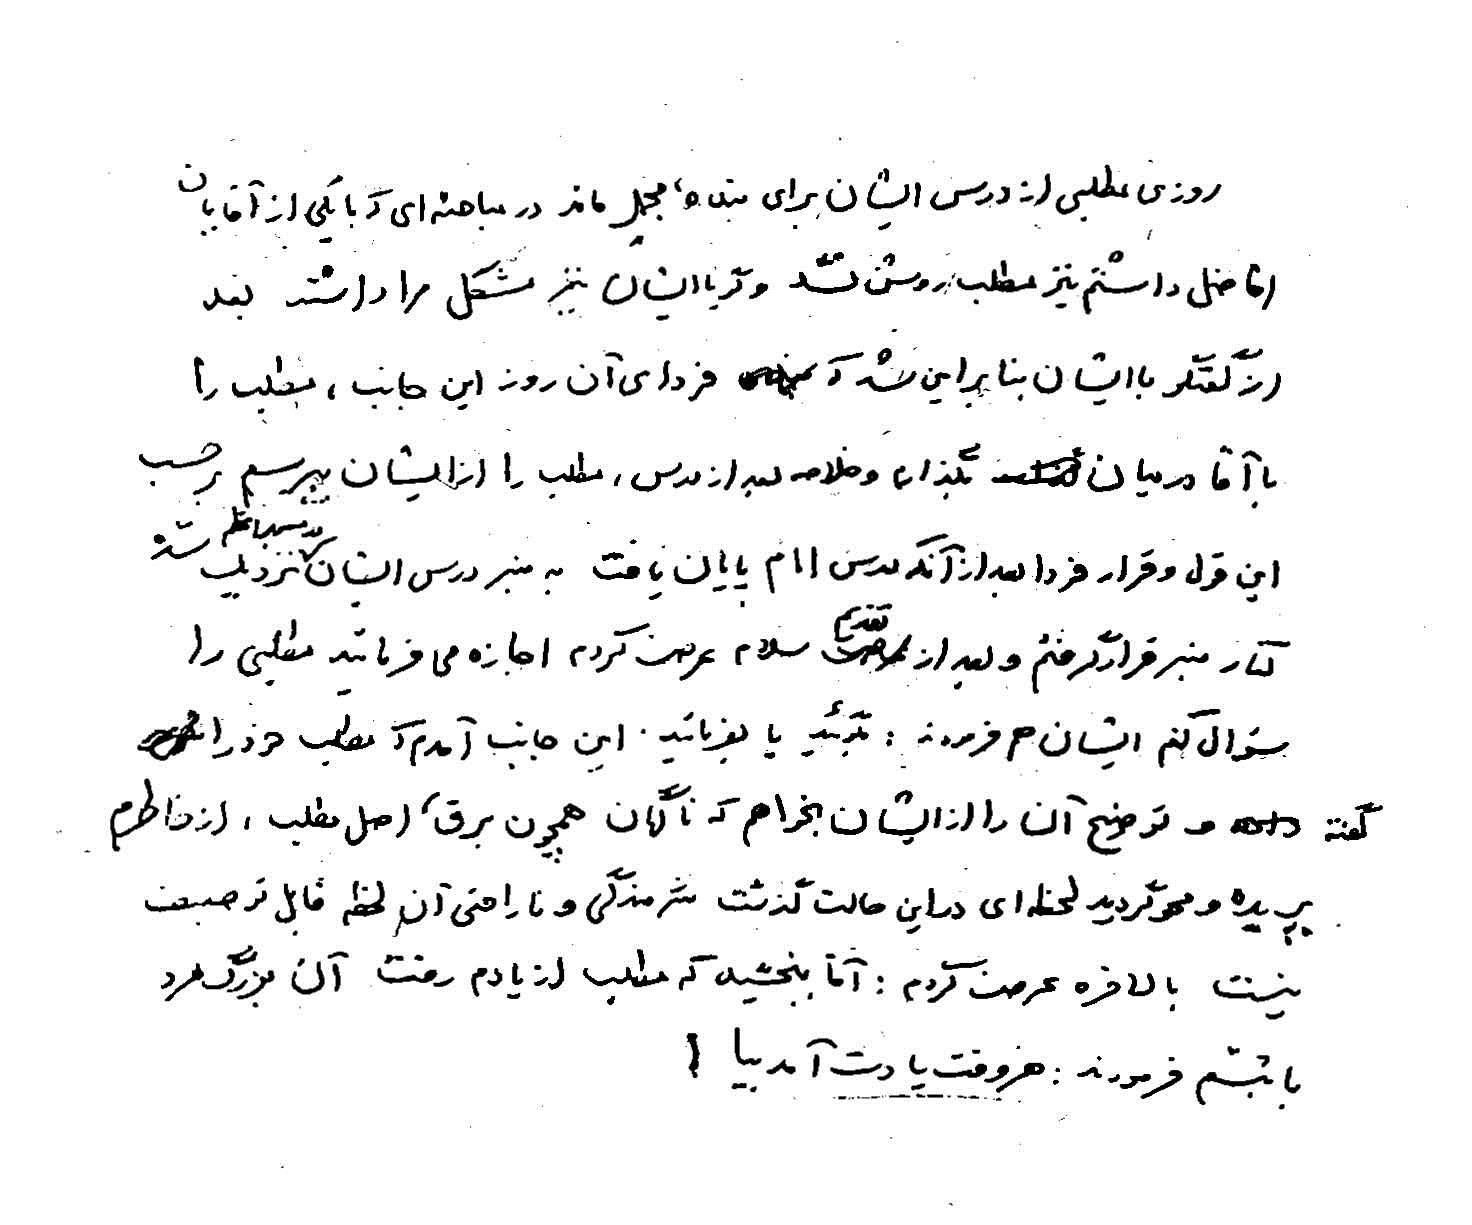 430-p163-181_Page_18